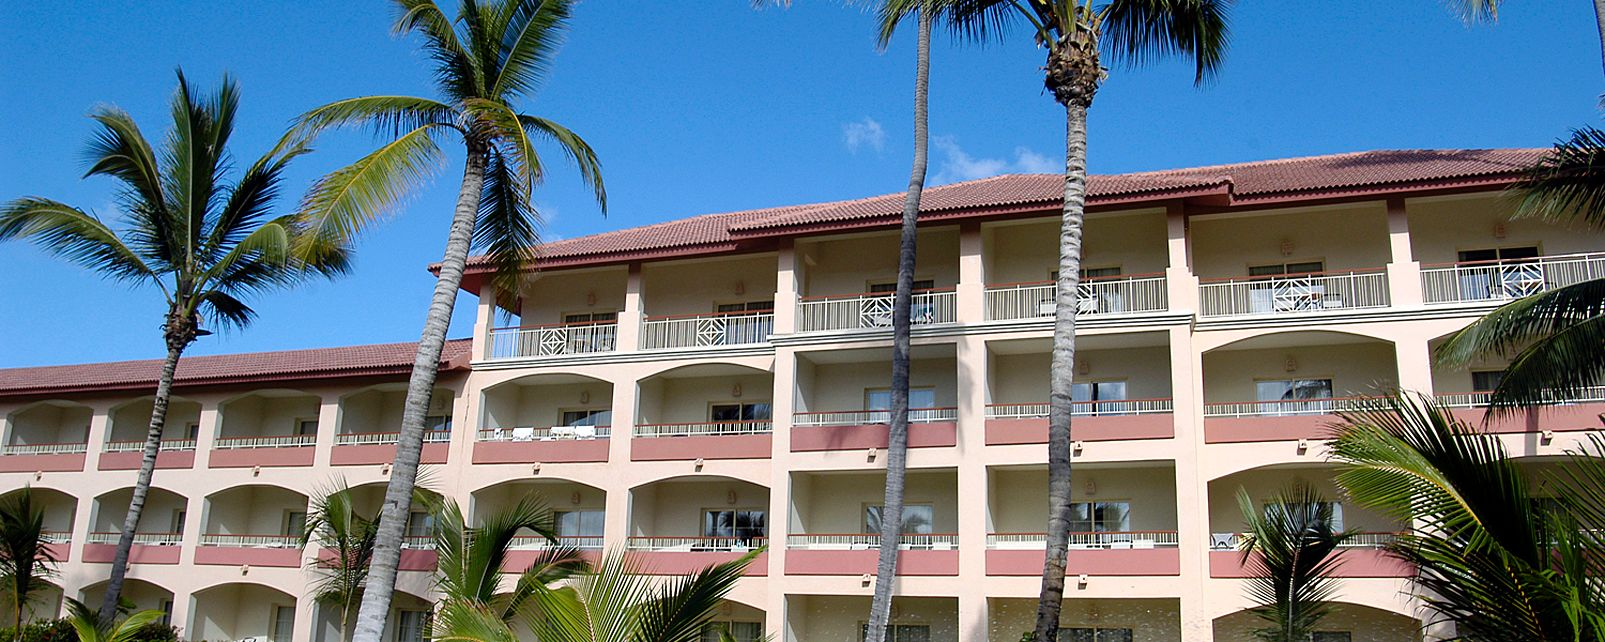 Hotel Majestic Colonial